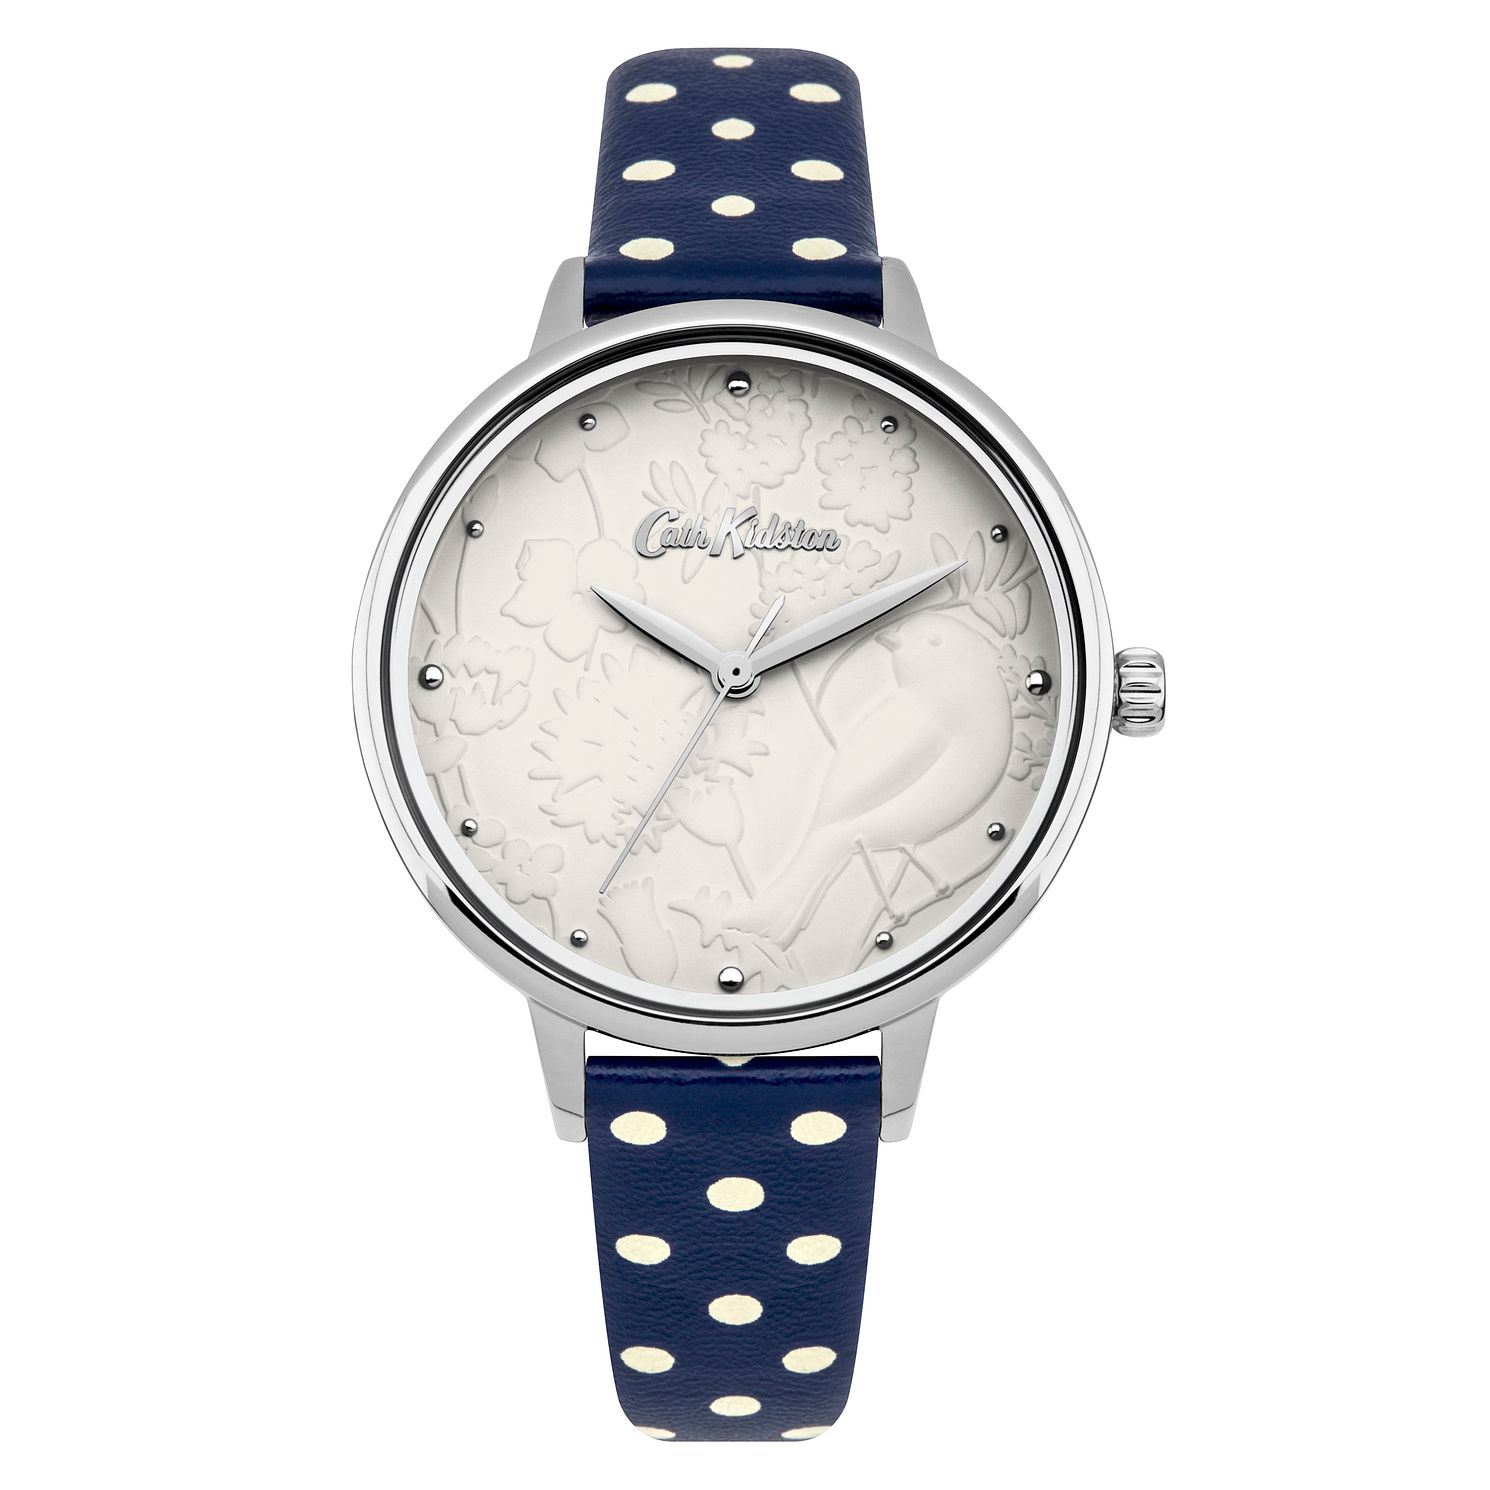 Cath Kidston Ladies' Navy Spot Strap Watch - Product number 4166655